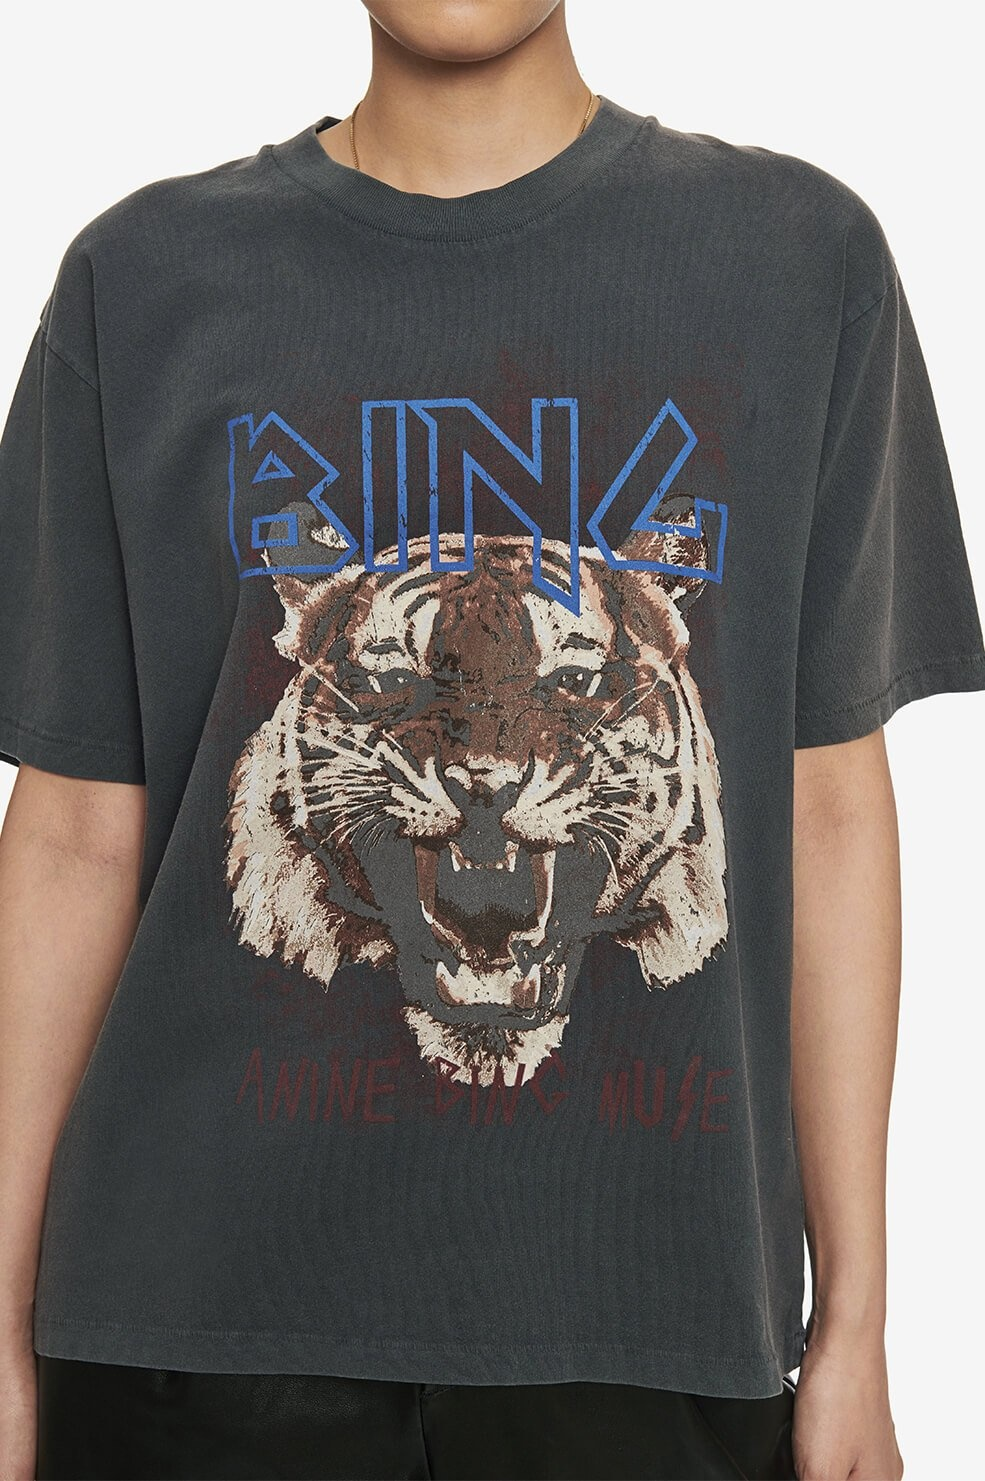 ANINE BING t-shirt tiger-3